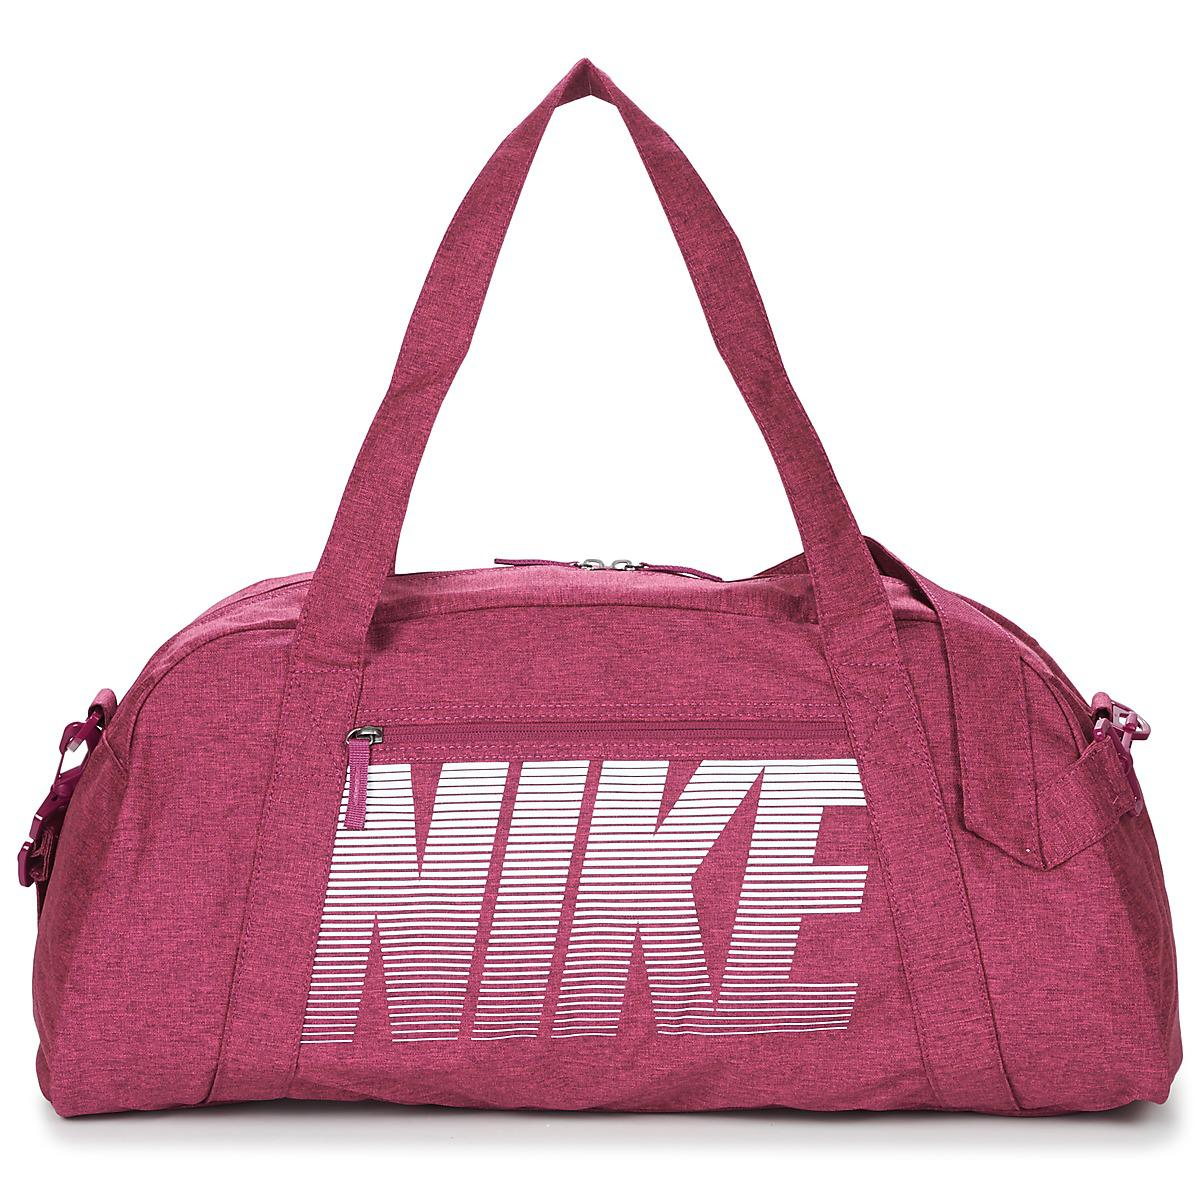 Nike Gym Club Women s Sports Bag In Pink in Pink - Lyst 9243191663